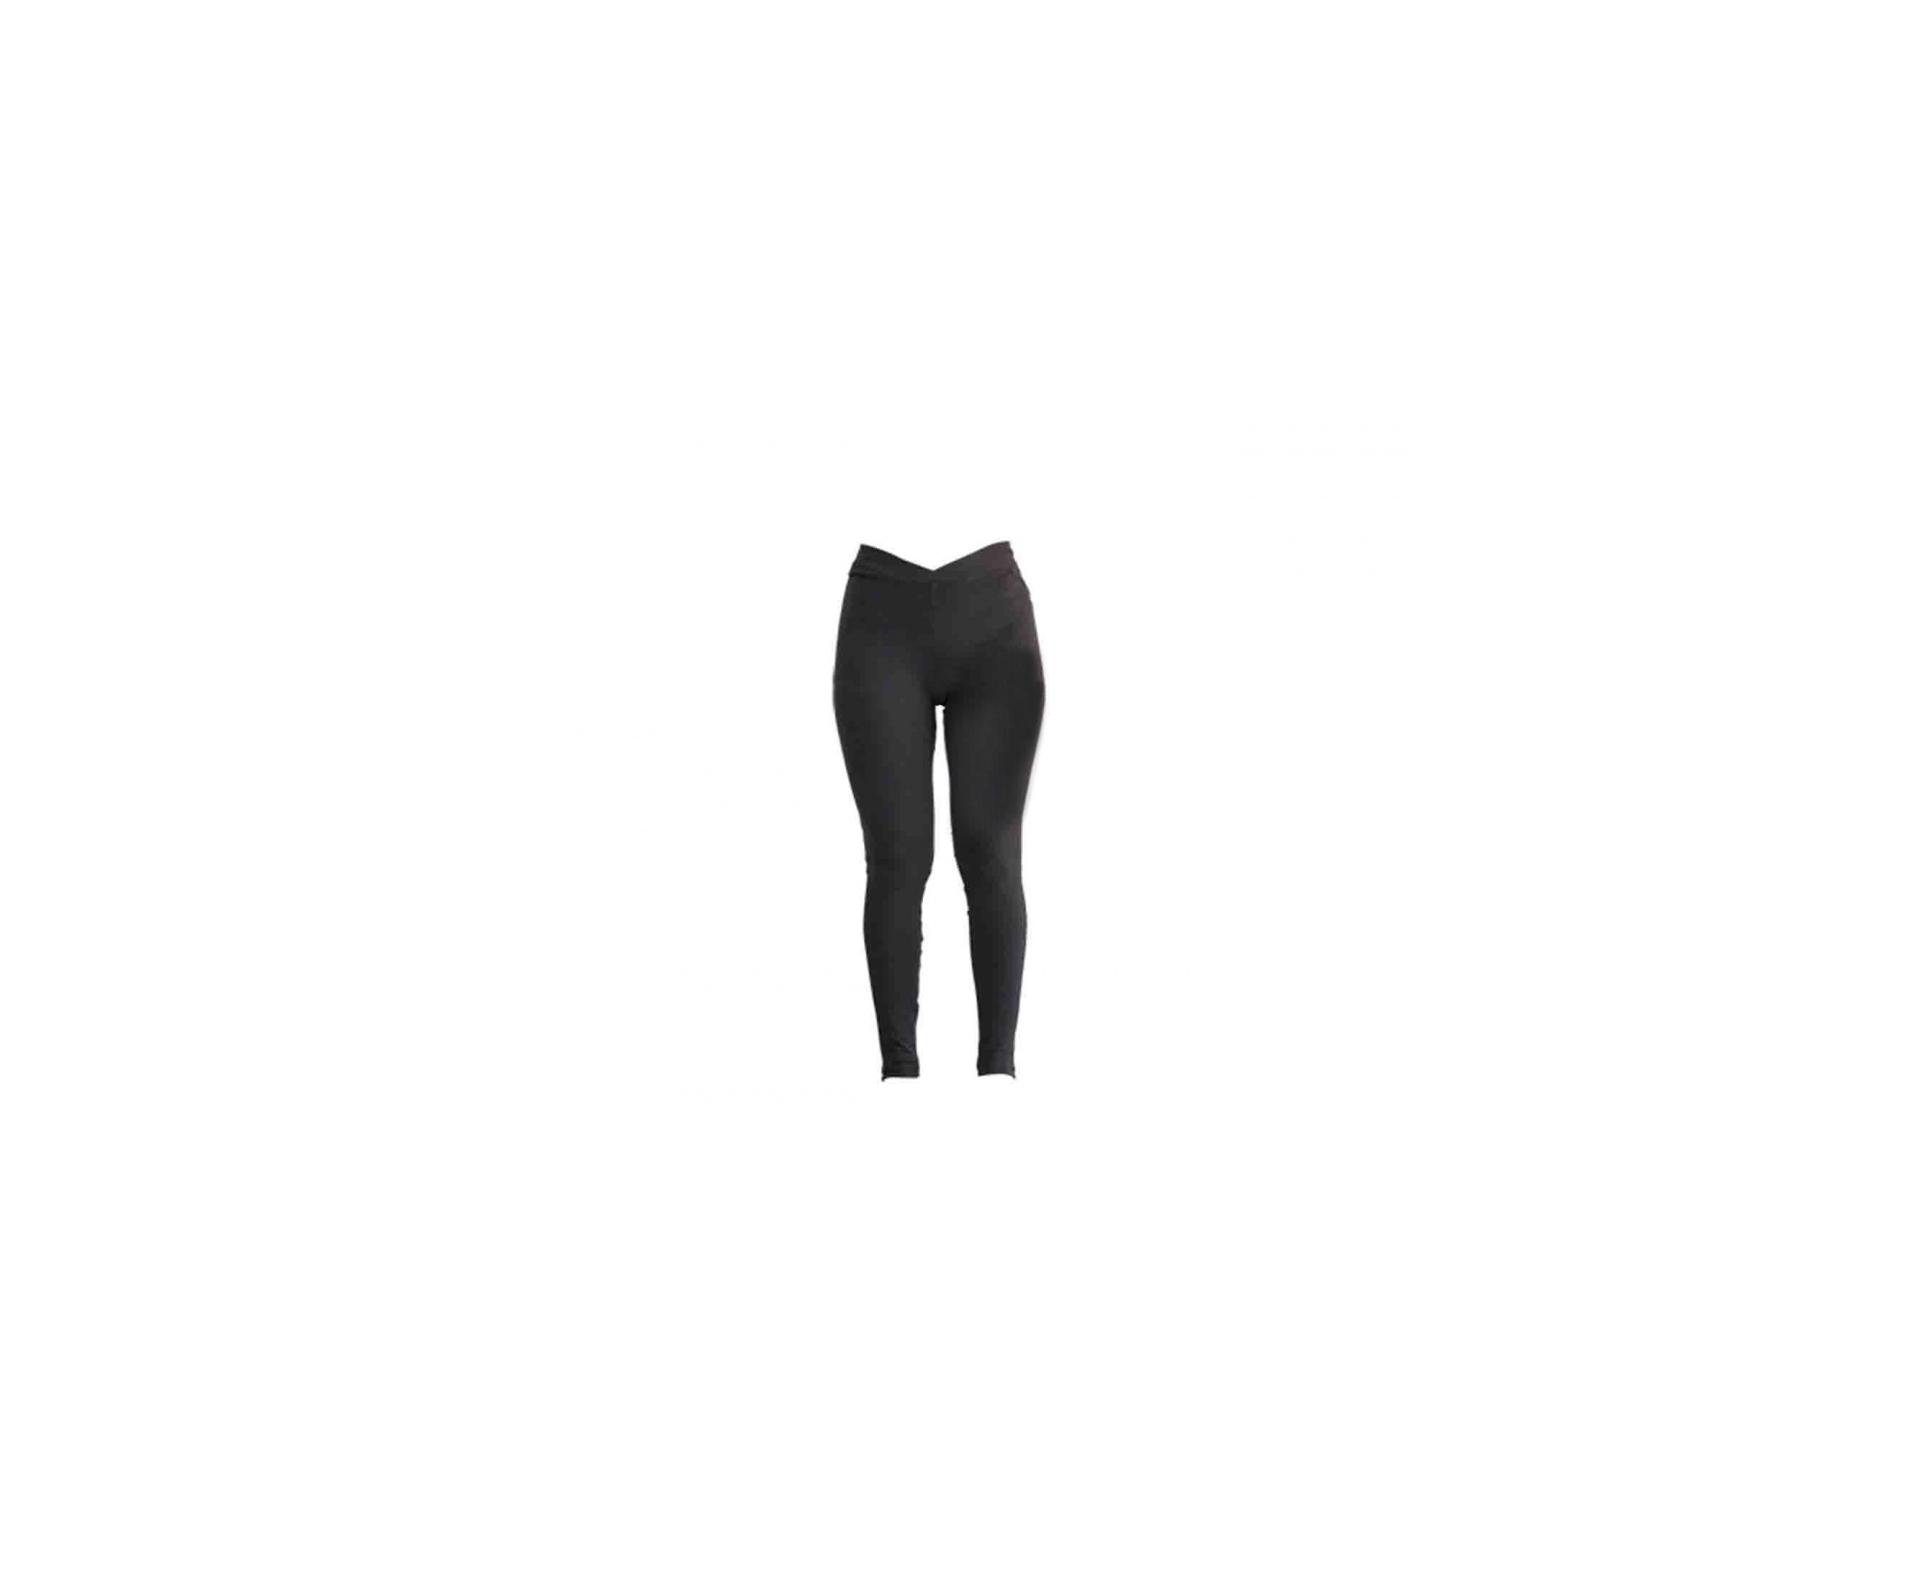 Calça Legging Black Trail Feminina  Preto - Hard